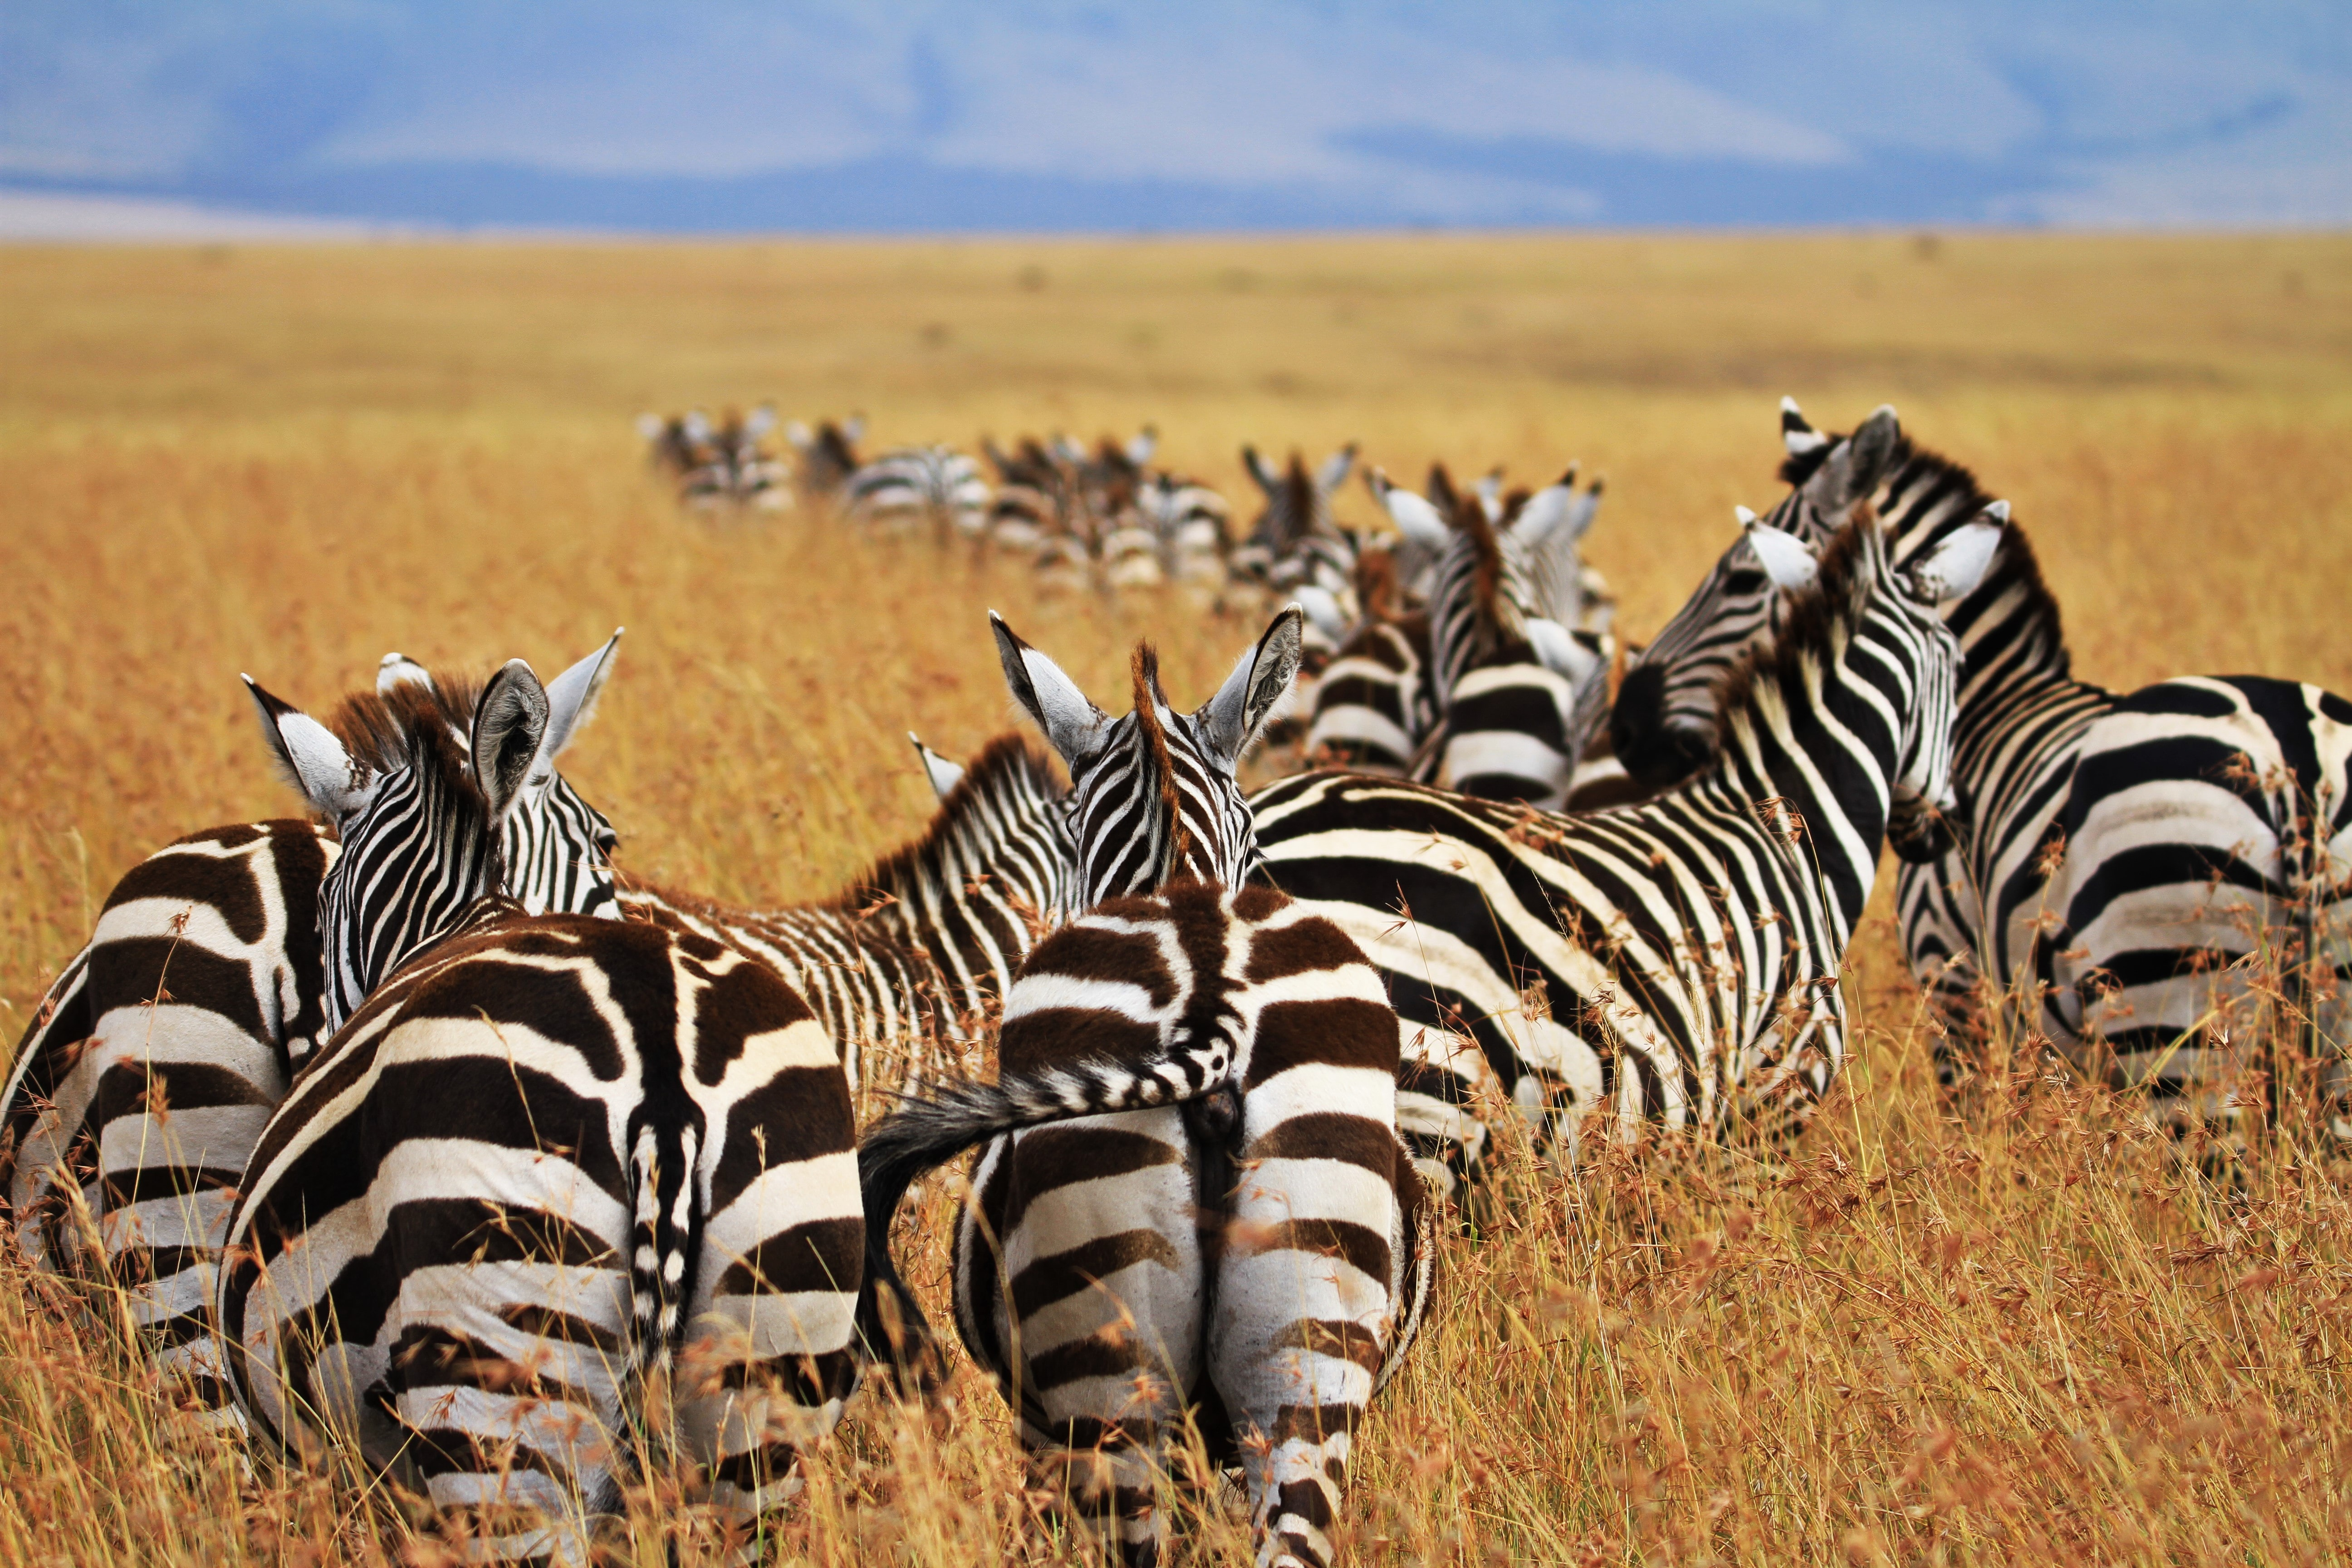 dazzle of zebras walking on desert during daytime